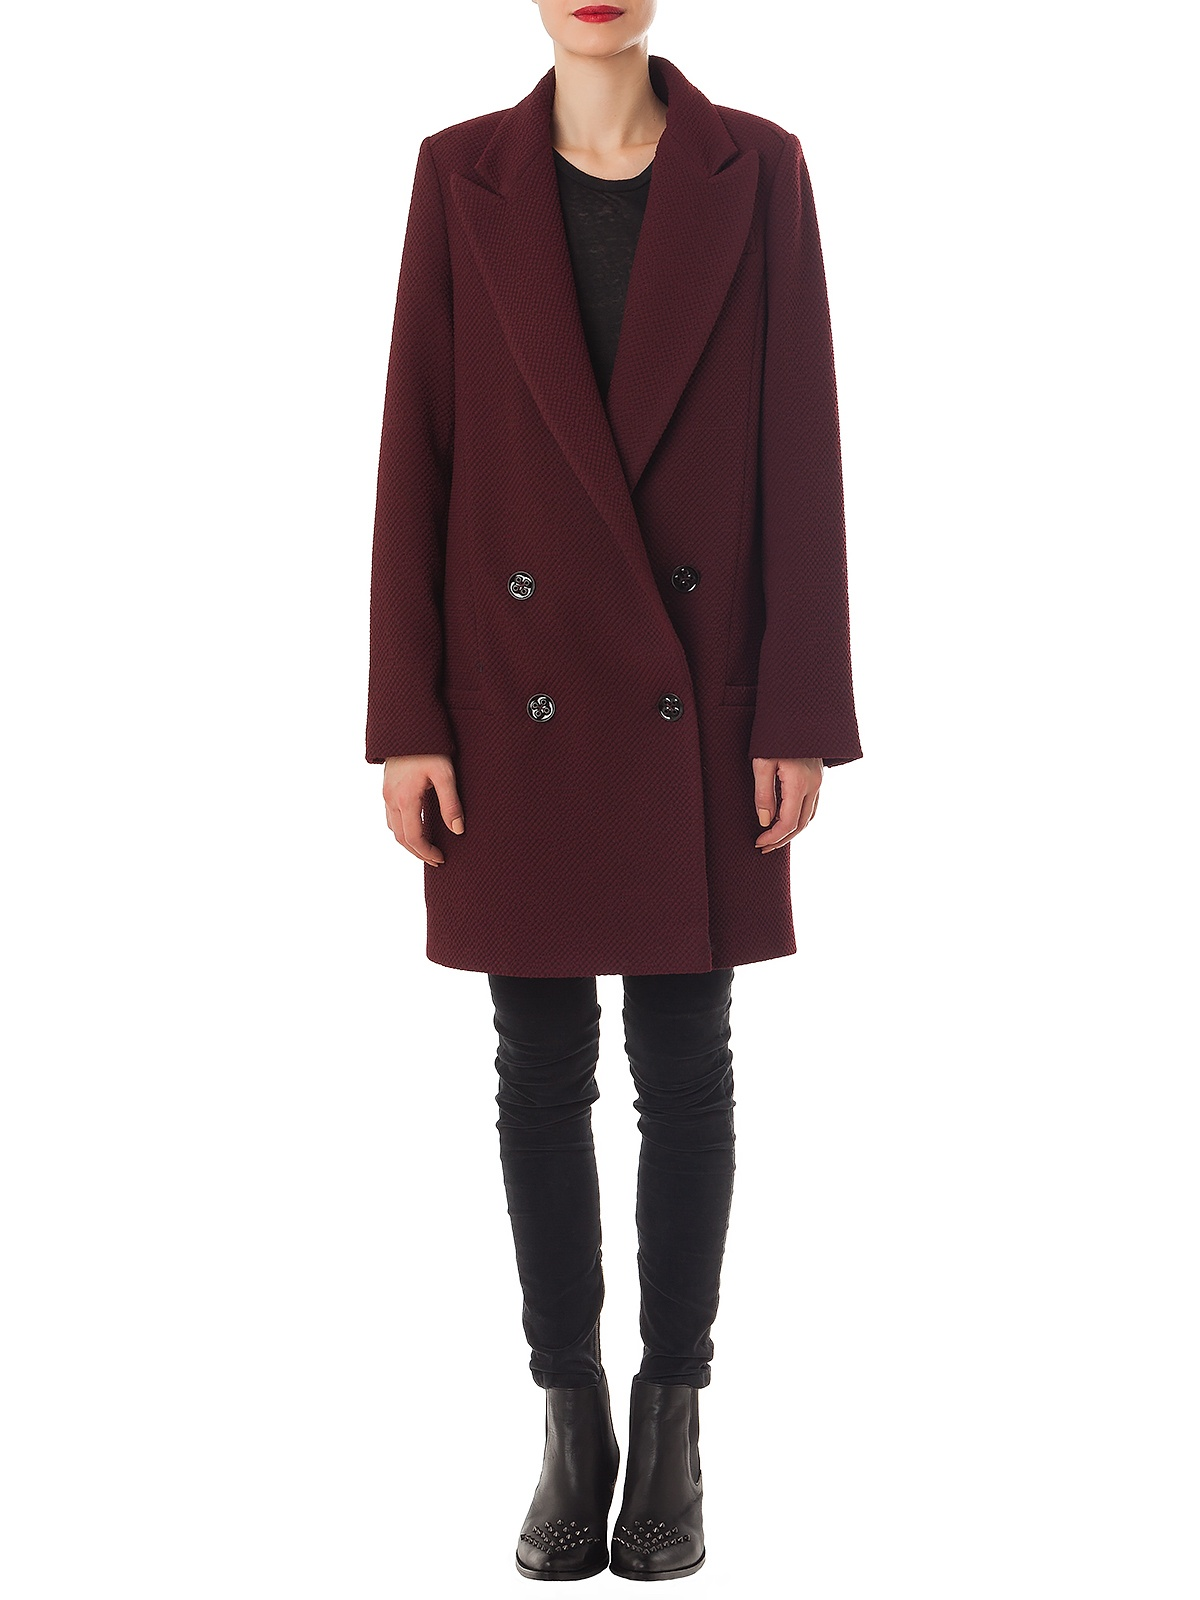 LISSETT BURGUNDY COAT | GIRISSIMA.COM - Collectible fashion to love and to last